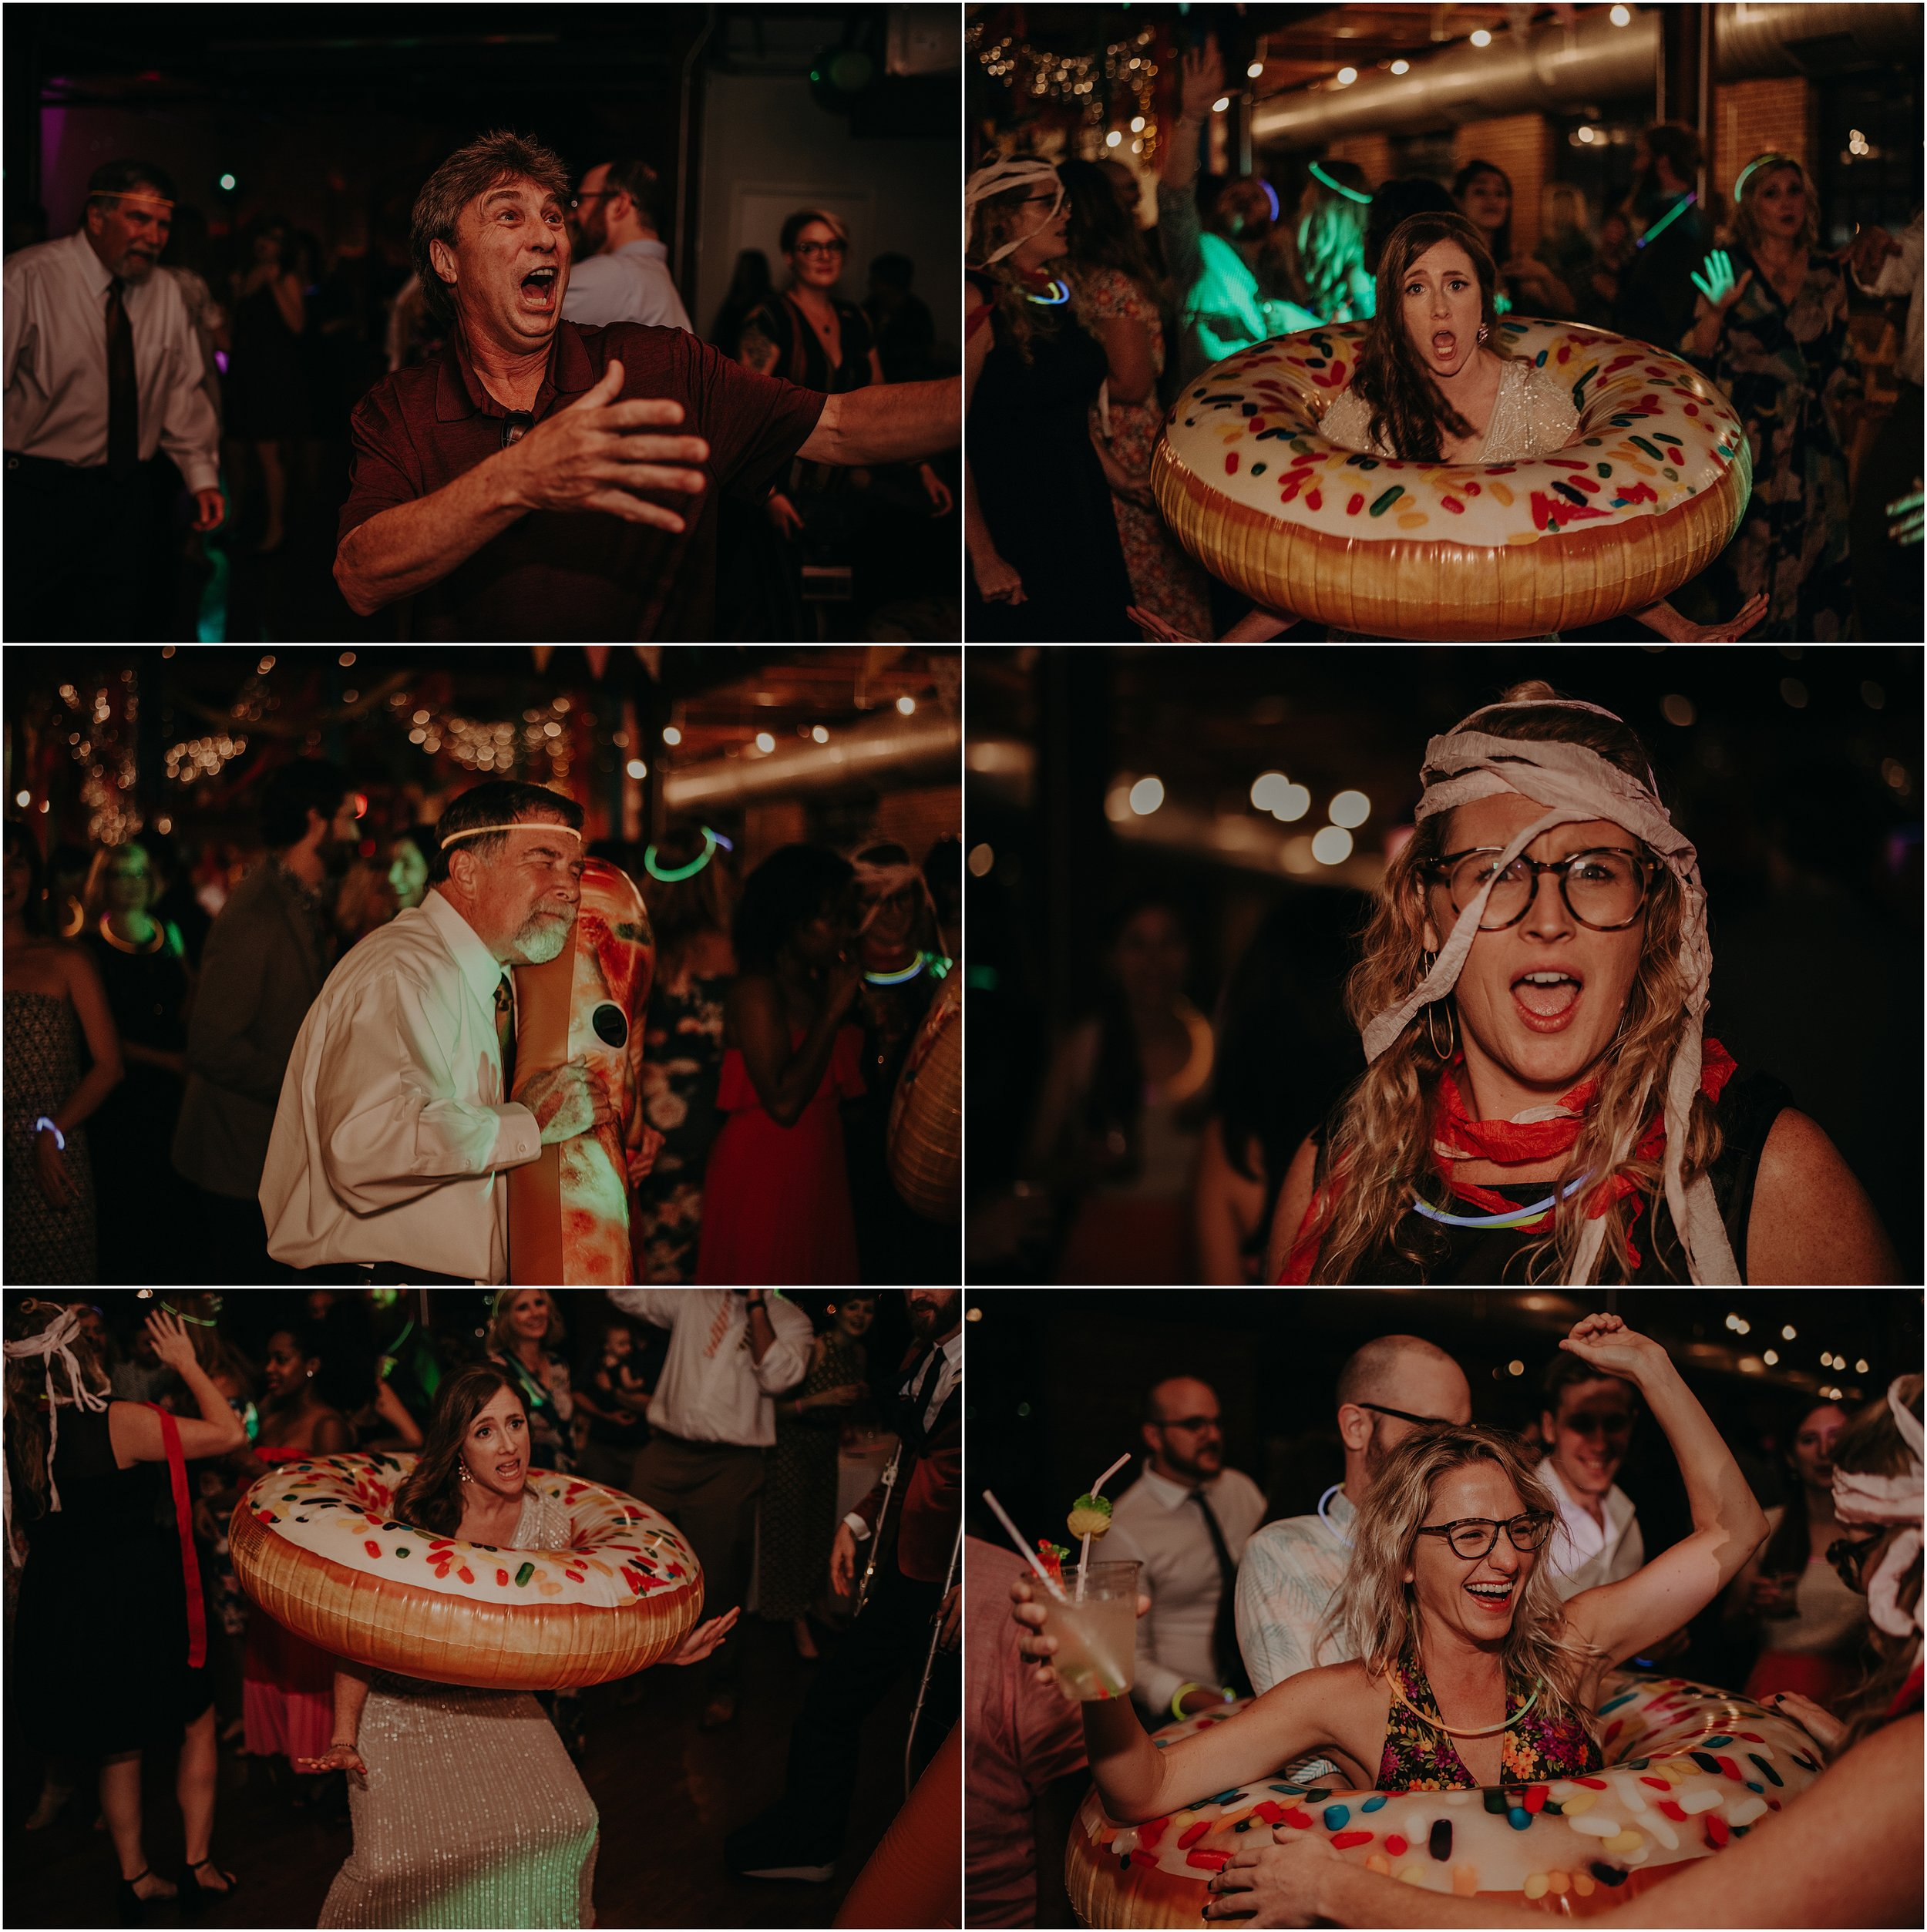 Things get weird and wild at this festival-inspired wedding reception